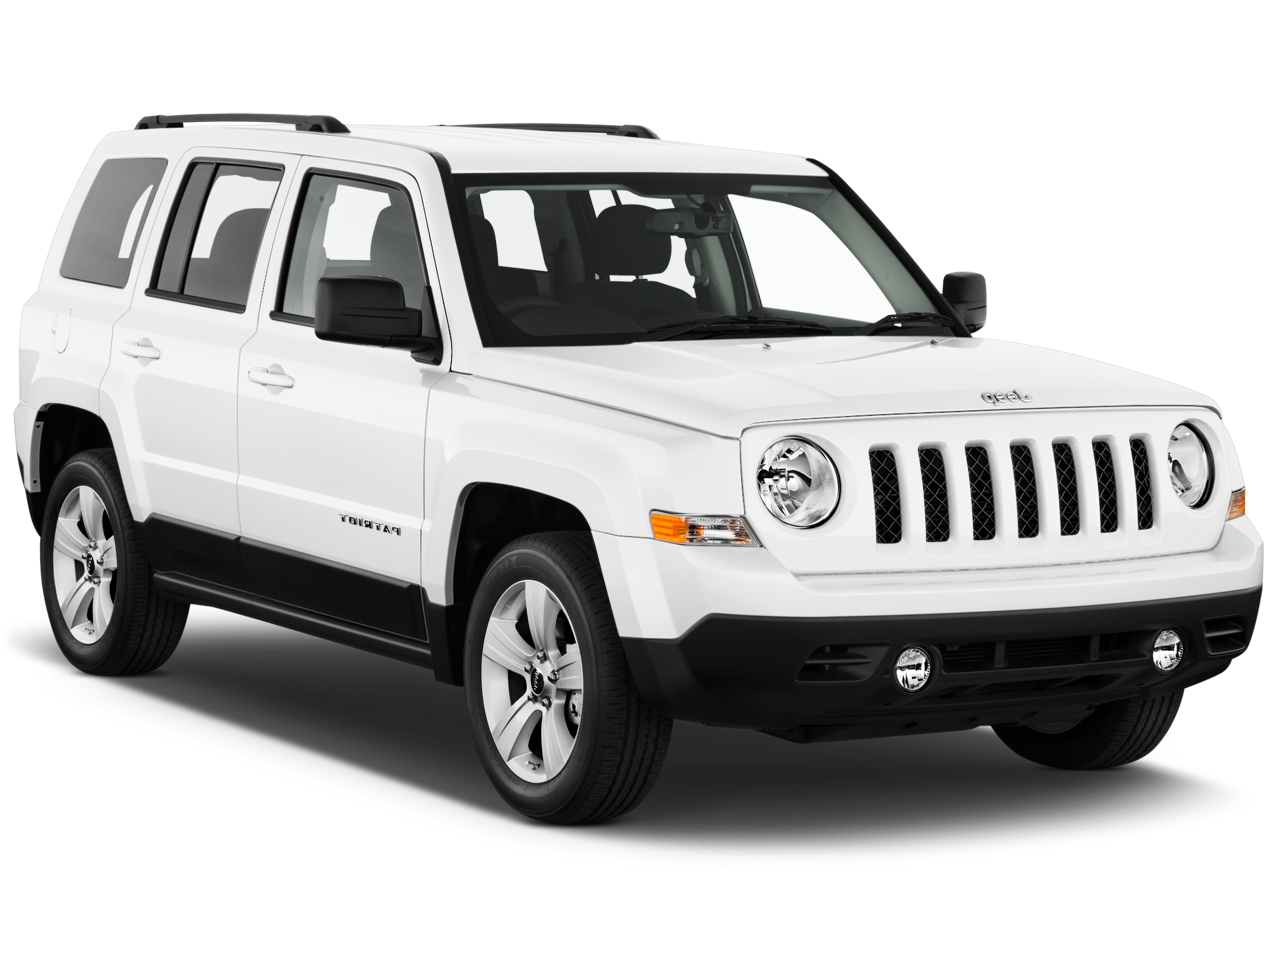 How To Unlock Your Jeep Patriot Radio Instantly Online